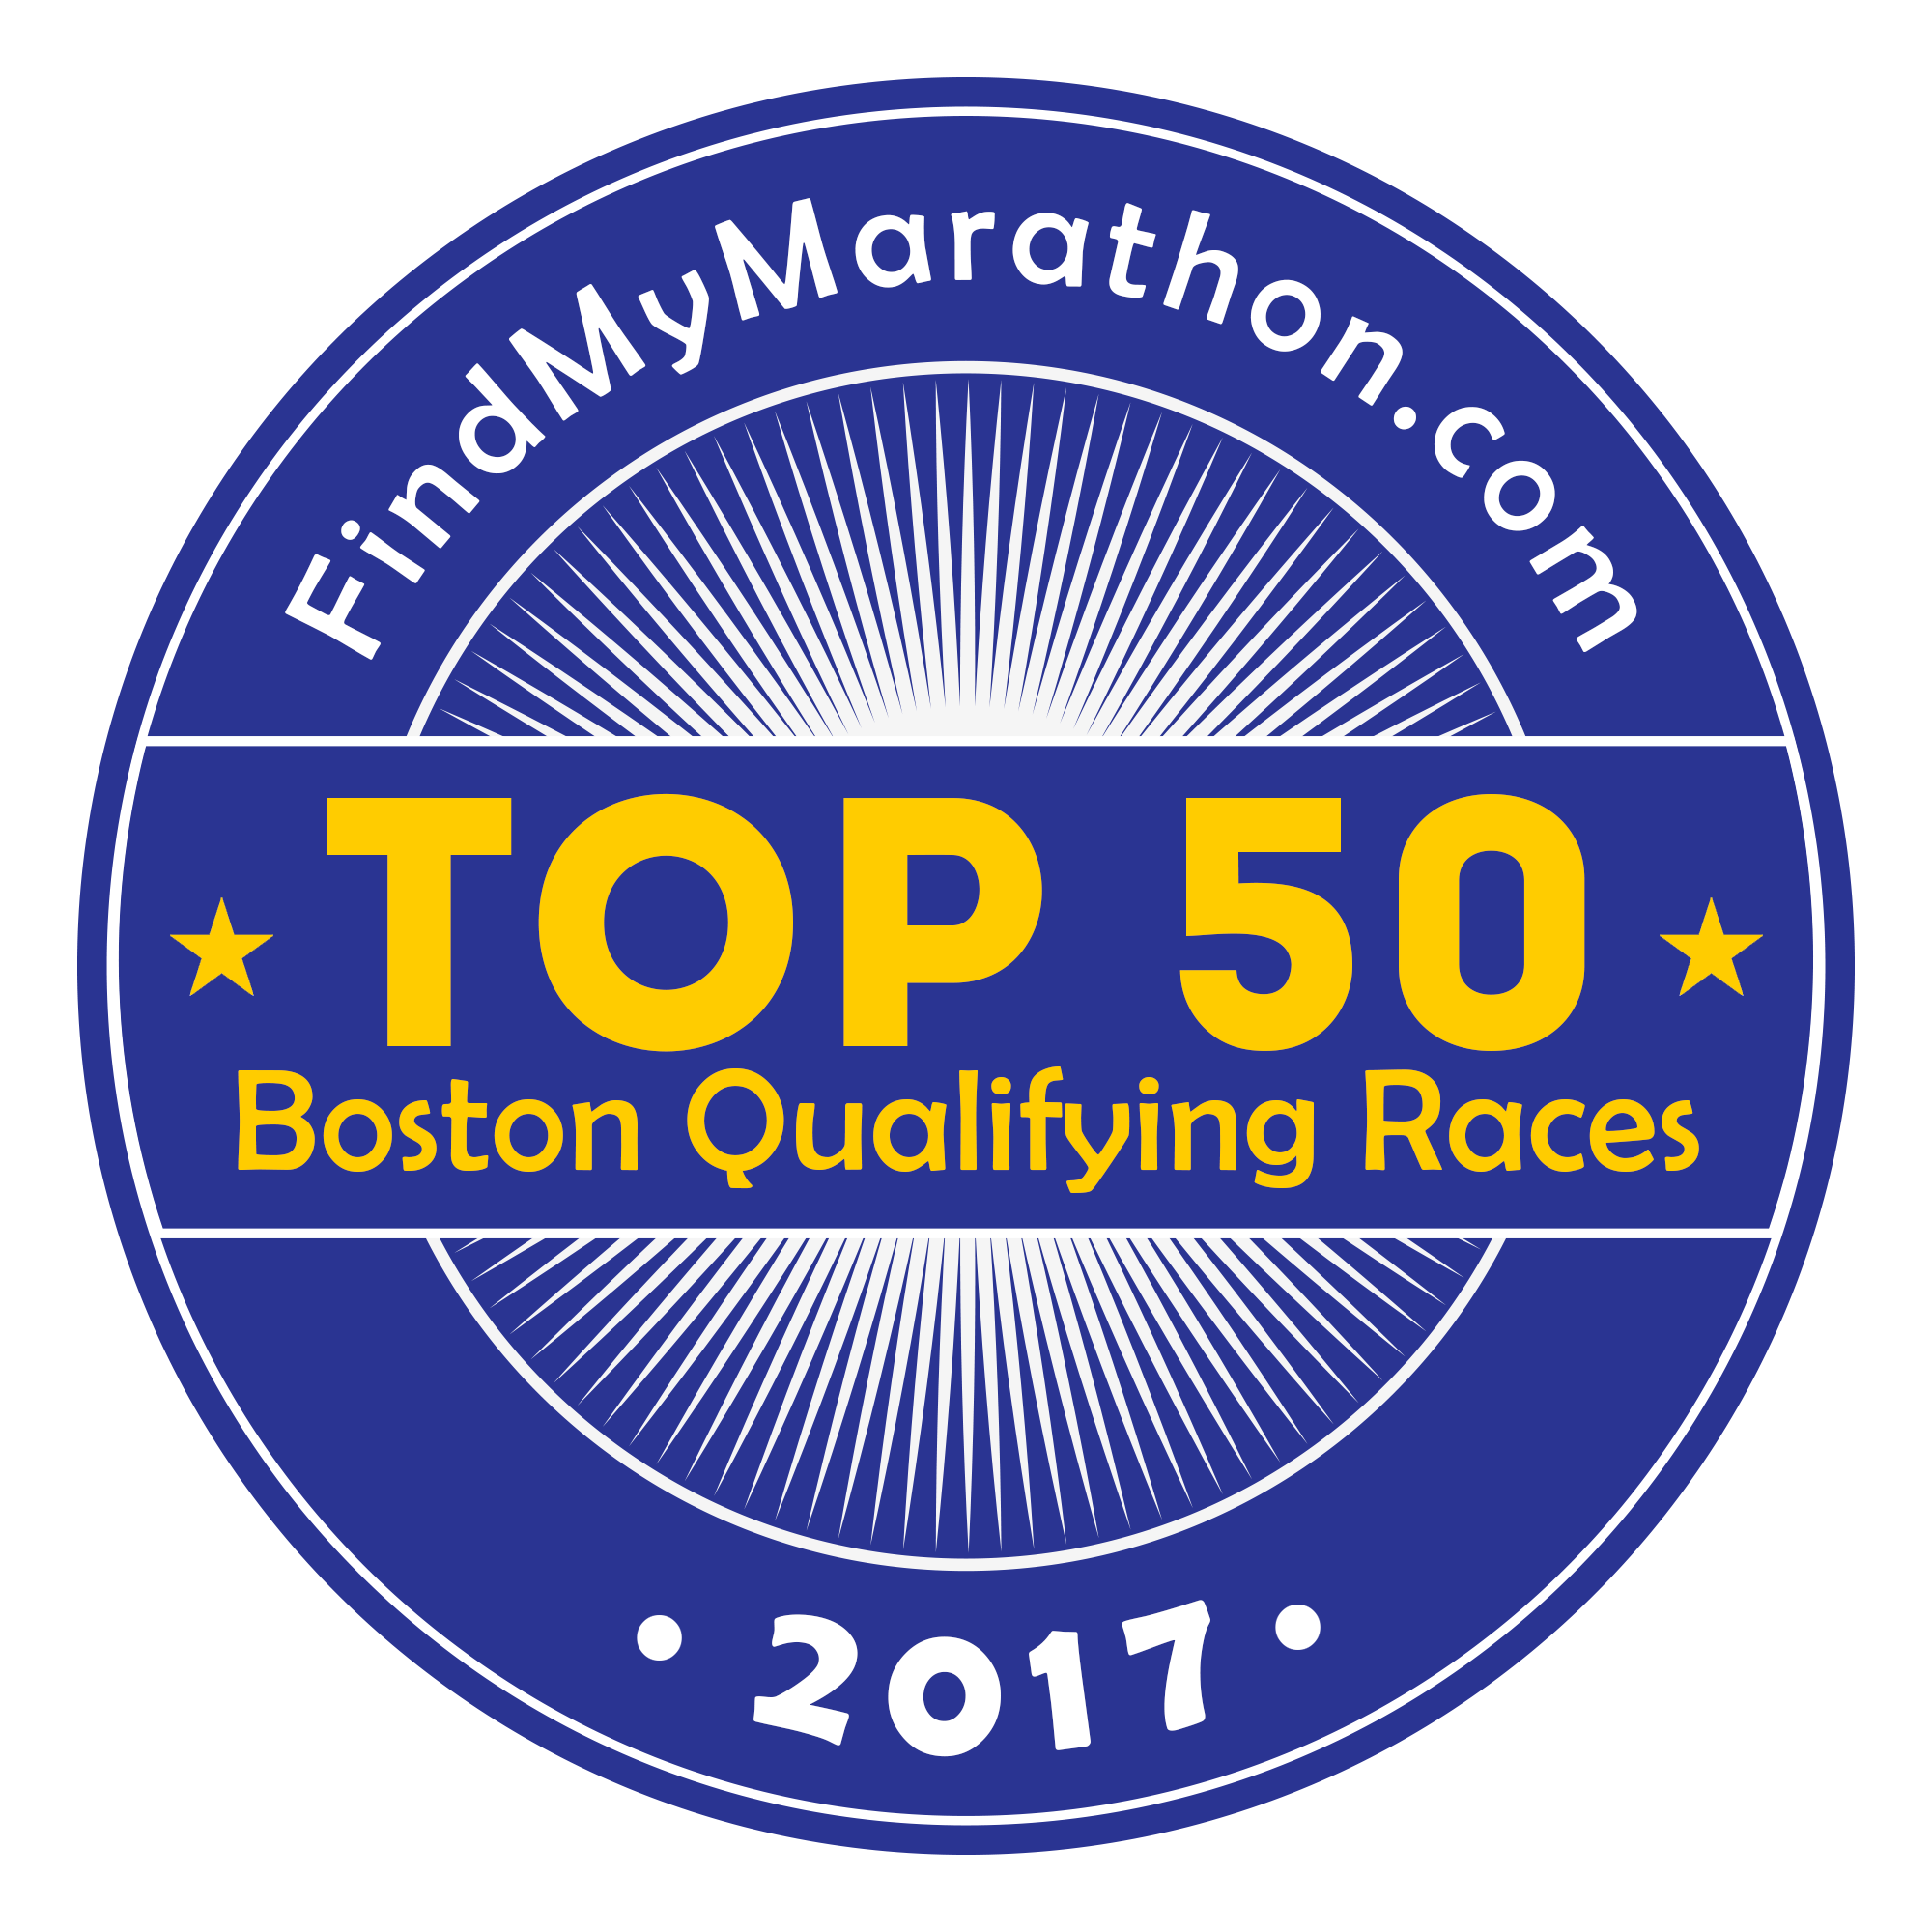 Top 50 Boston Qualifying Races for 2017